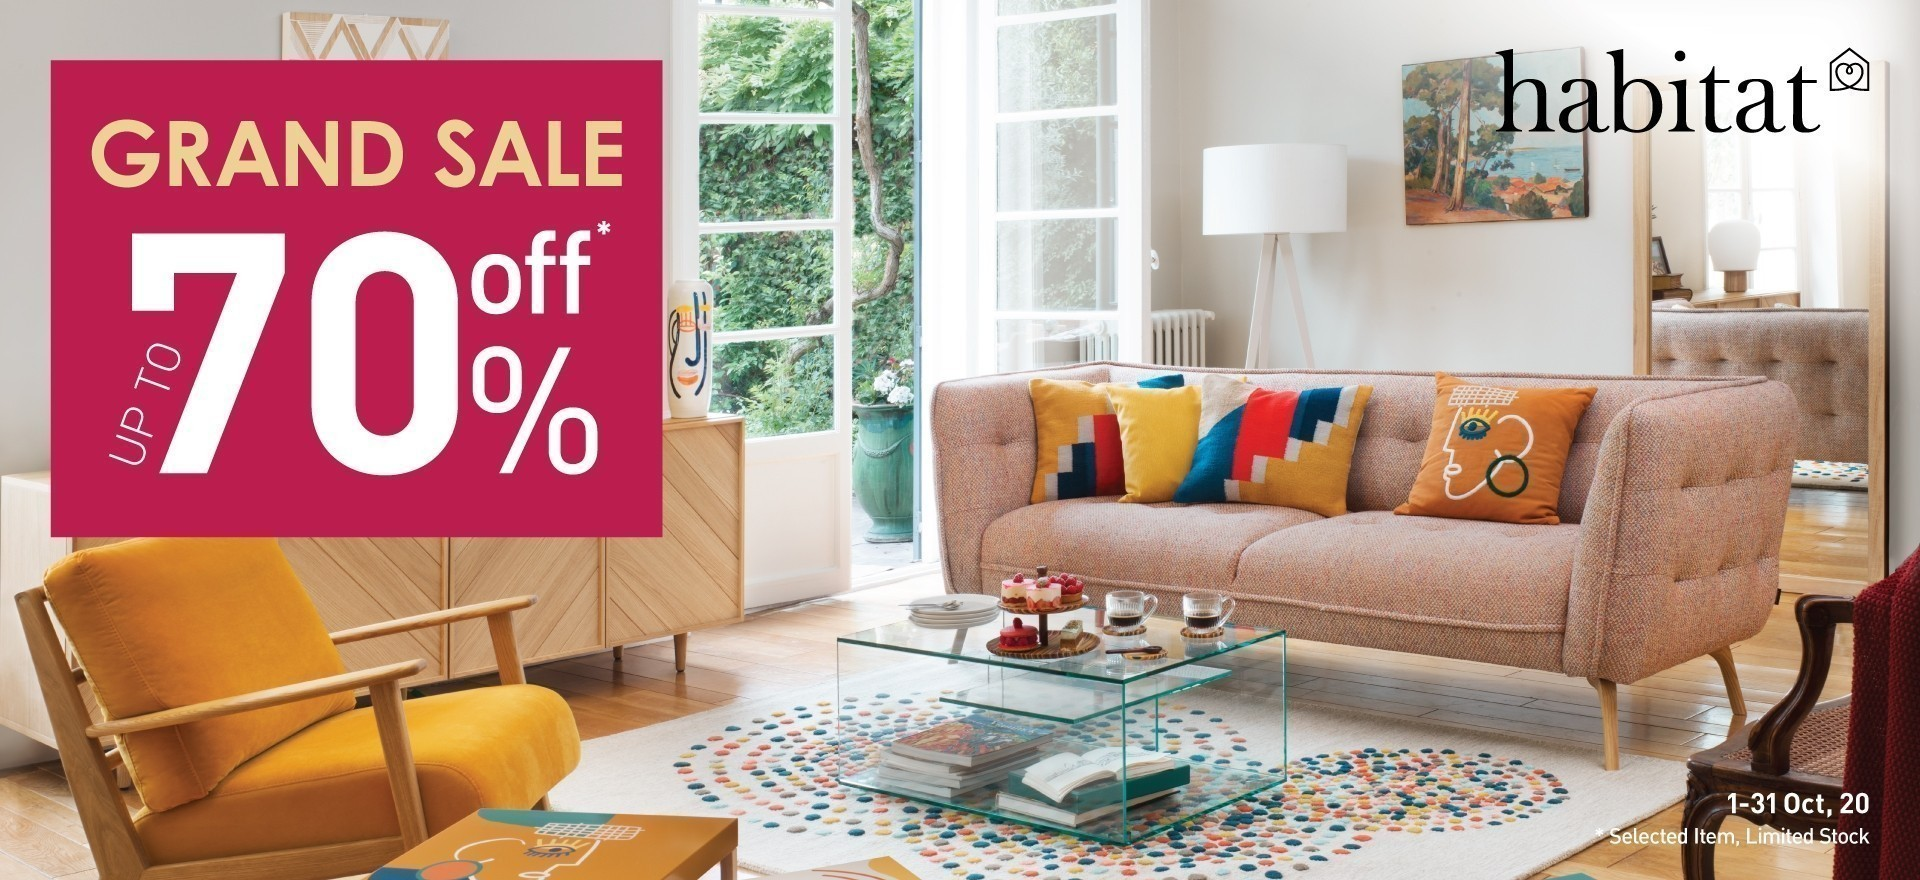 Habitat Grand Sale up to 70%off